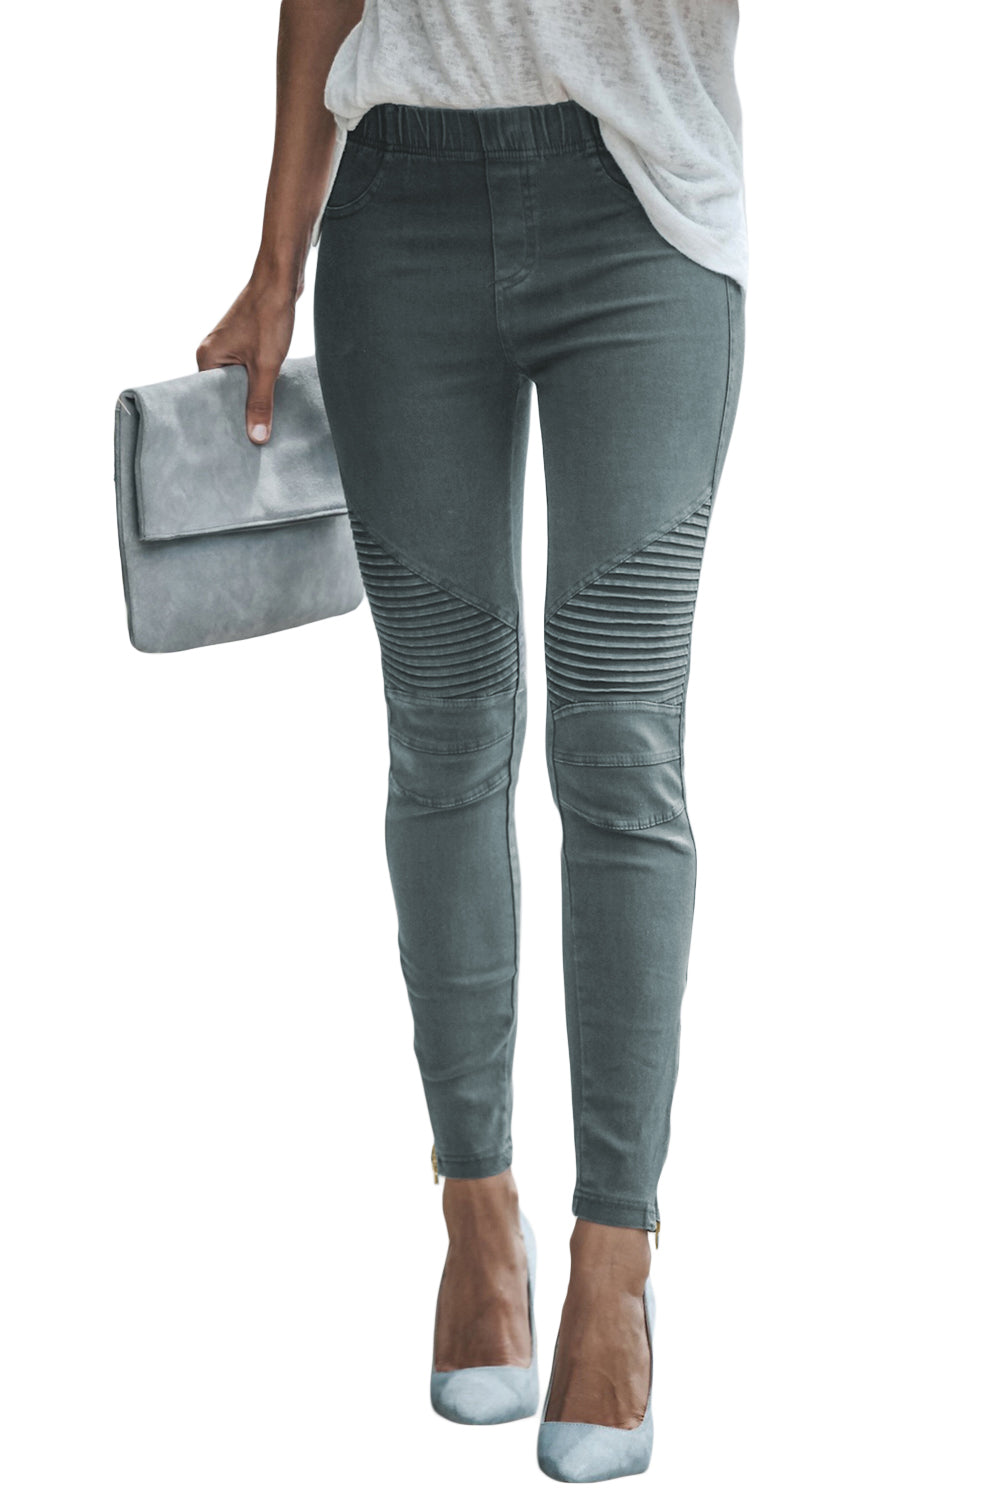 Sage Green Piper Jeggings